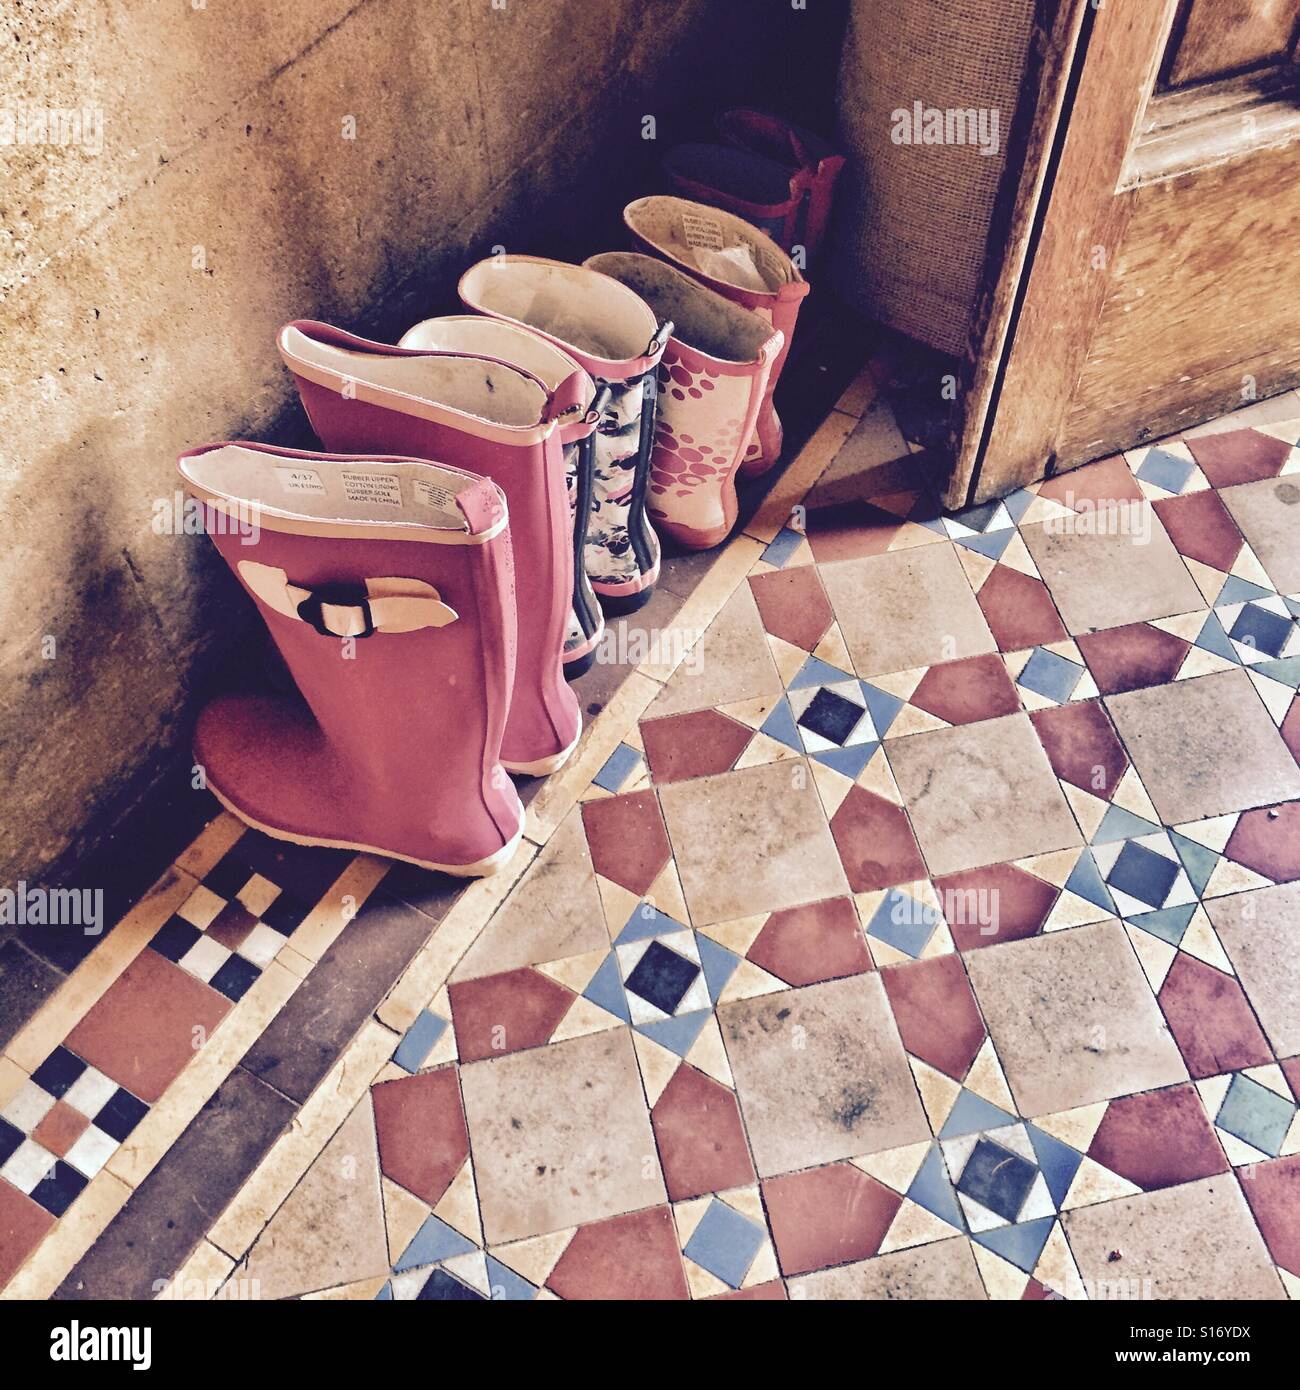 A family of Wellington boots lined up at the door Stock Photo